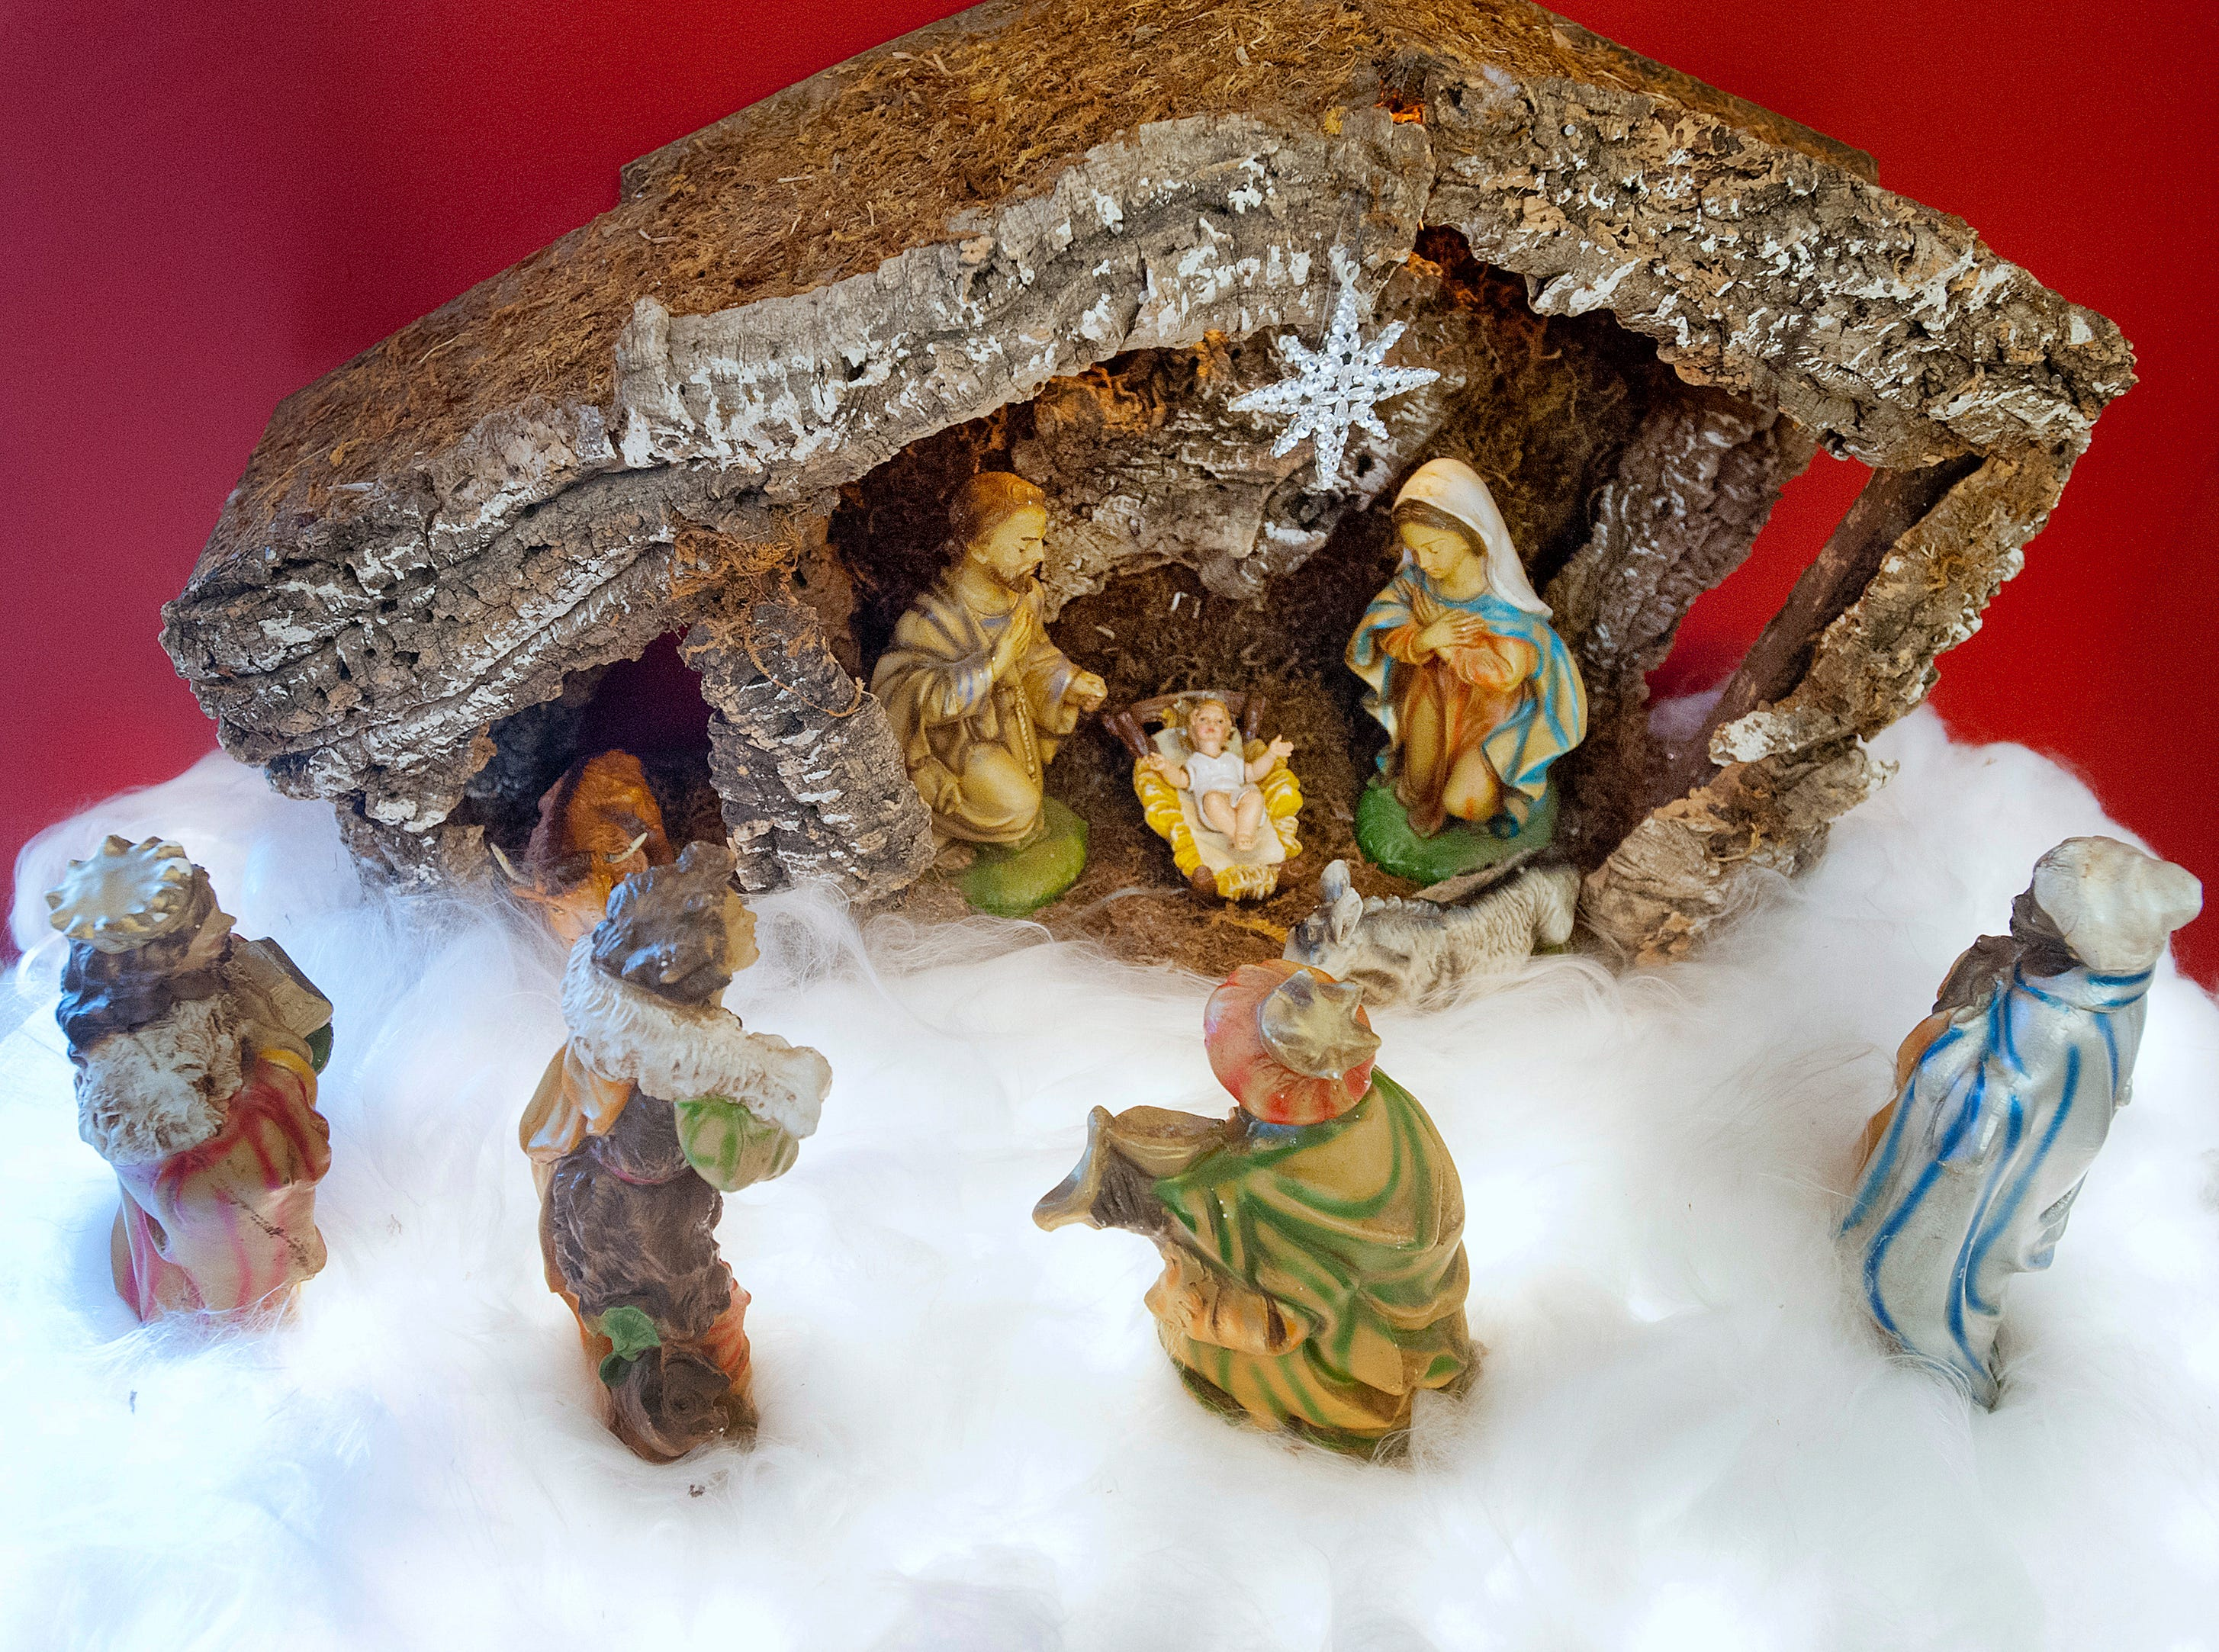 This nativity scene is Teresa McMurry's first.